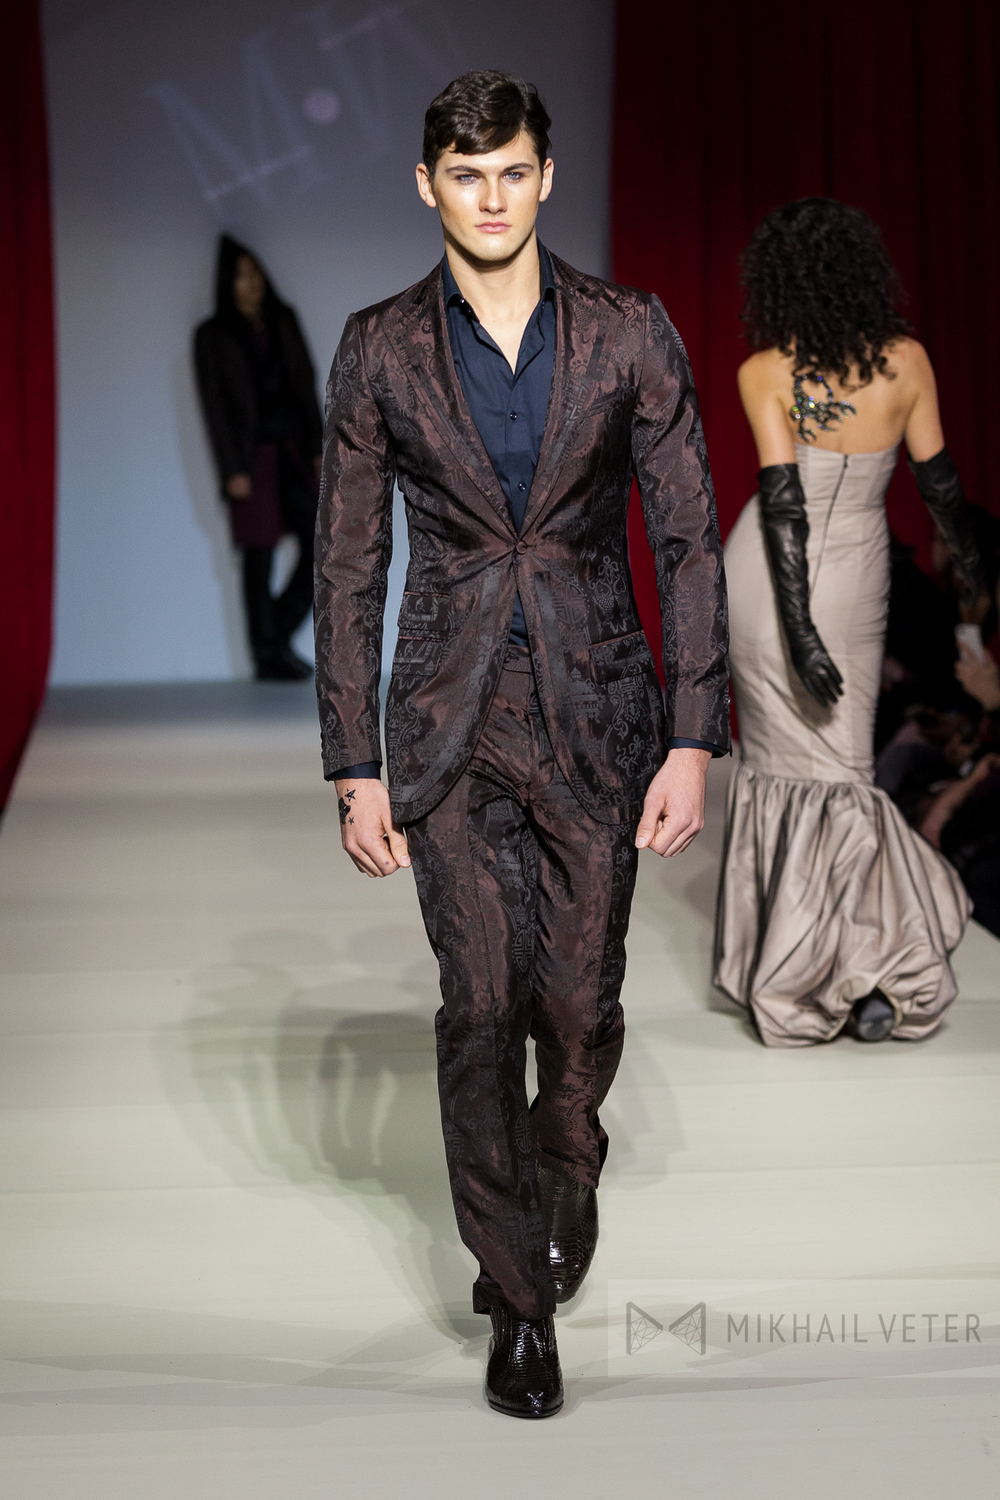 Malan Breton | Style Fashion Week NYFW Fall 2016